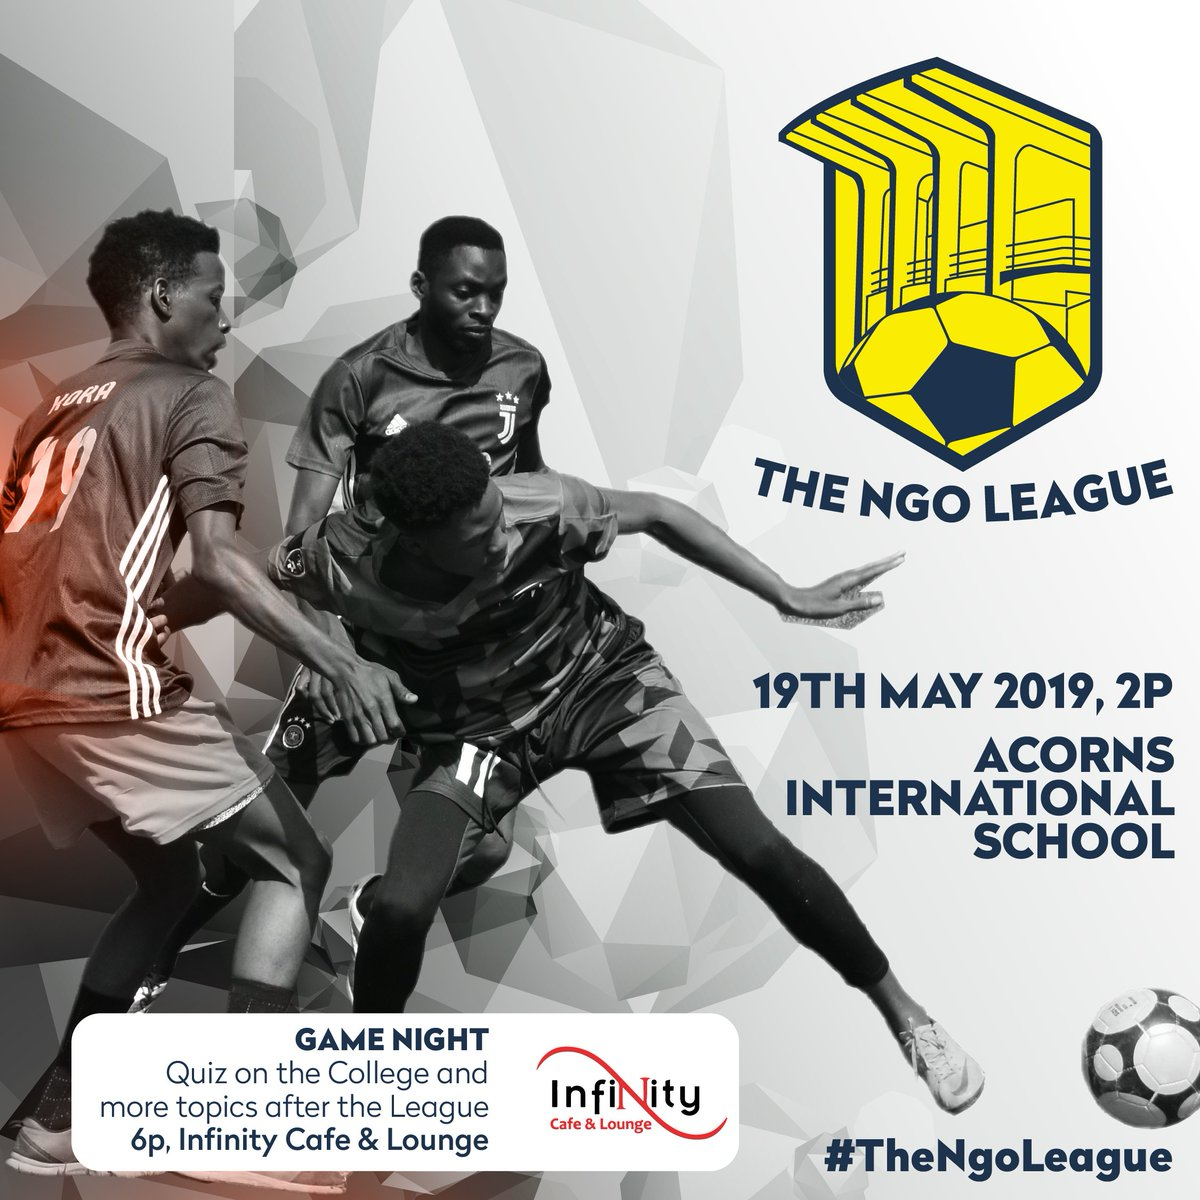 The Ngo League's photo on MATCH DAY